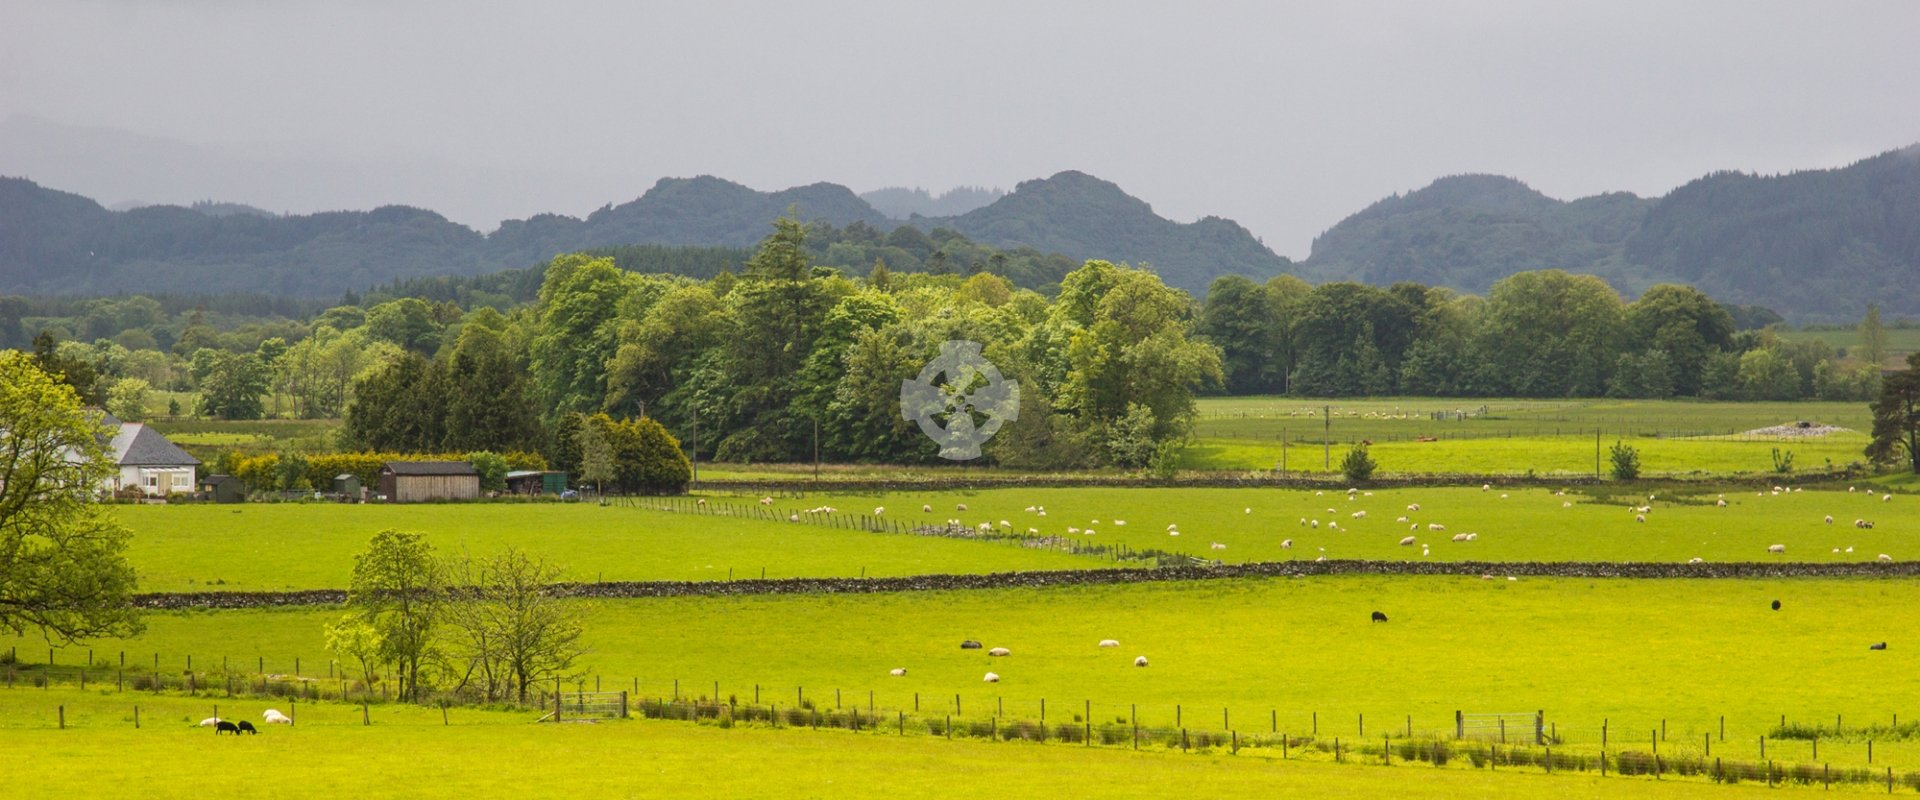 kilmartin glen from church landscape panorama